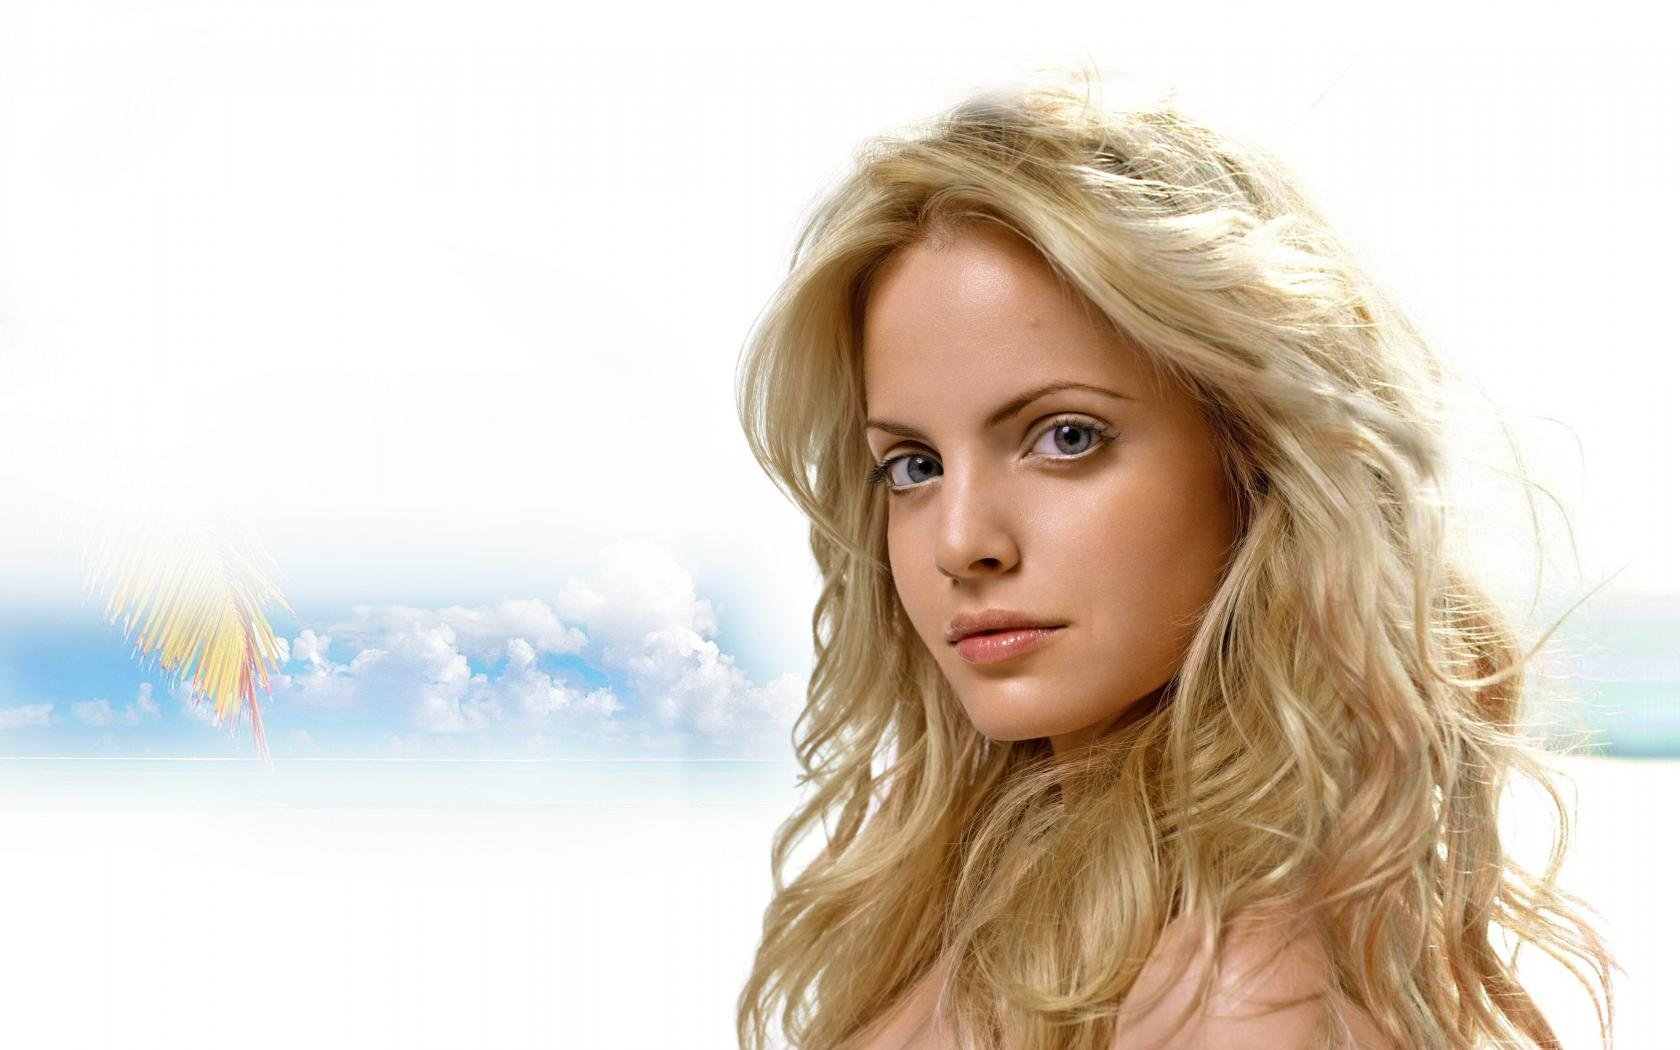 Awesome Mena Suvari free background ID:445577 for hd 1680x1050 PC